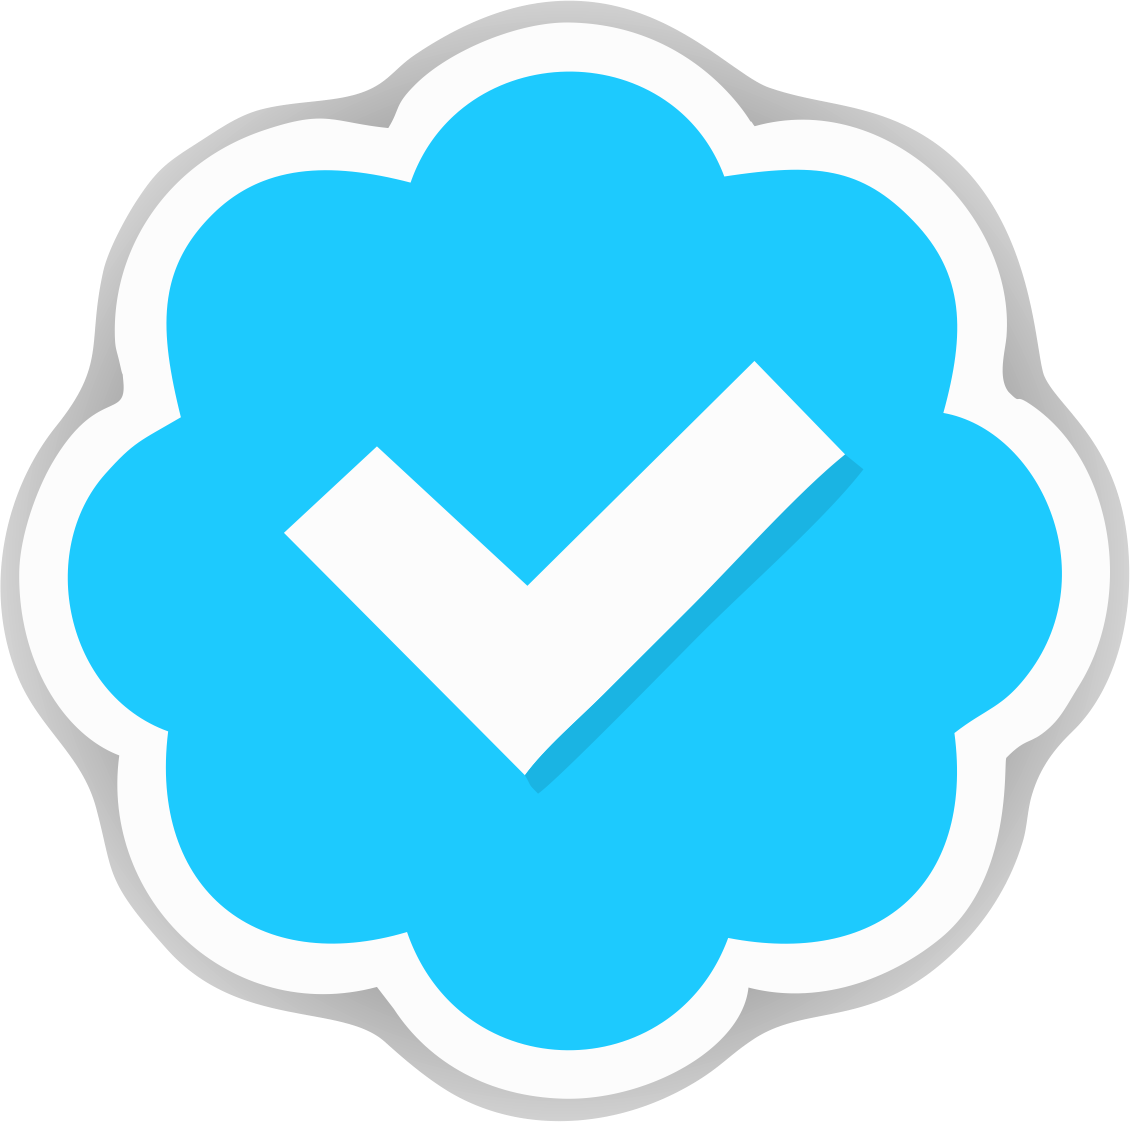 Instagram verified badge png. Pcholic twitter announces application